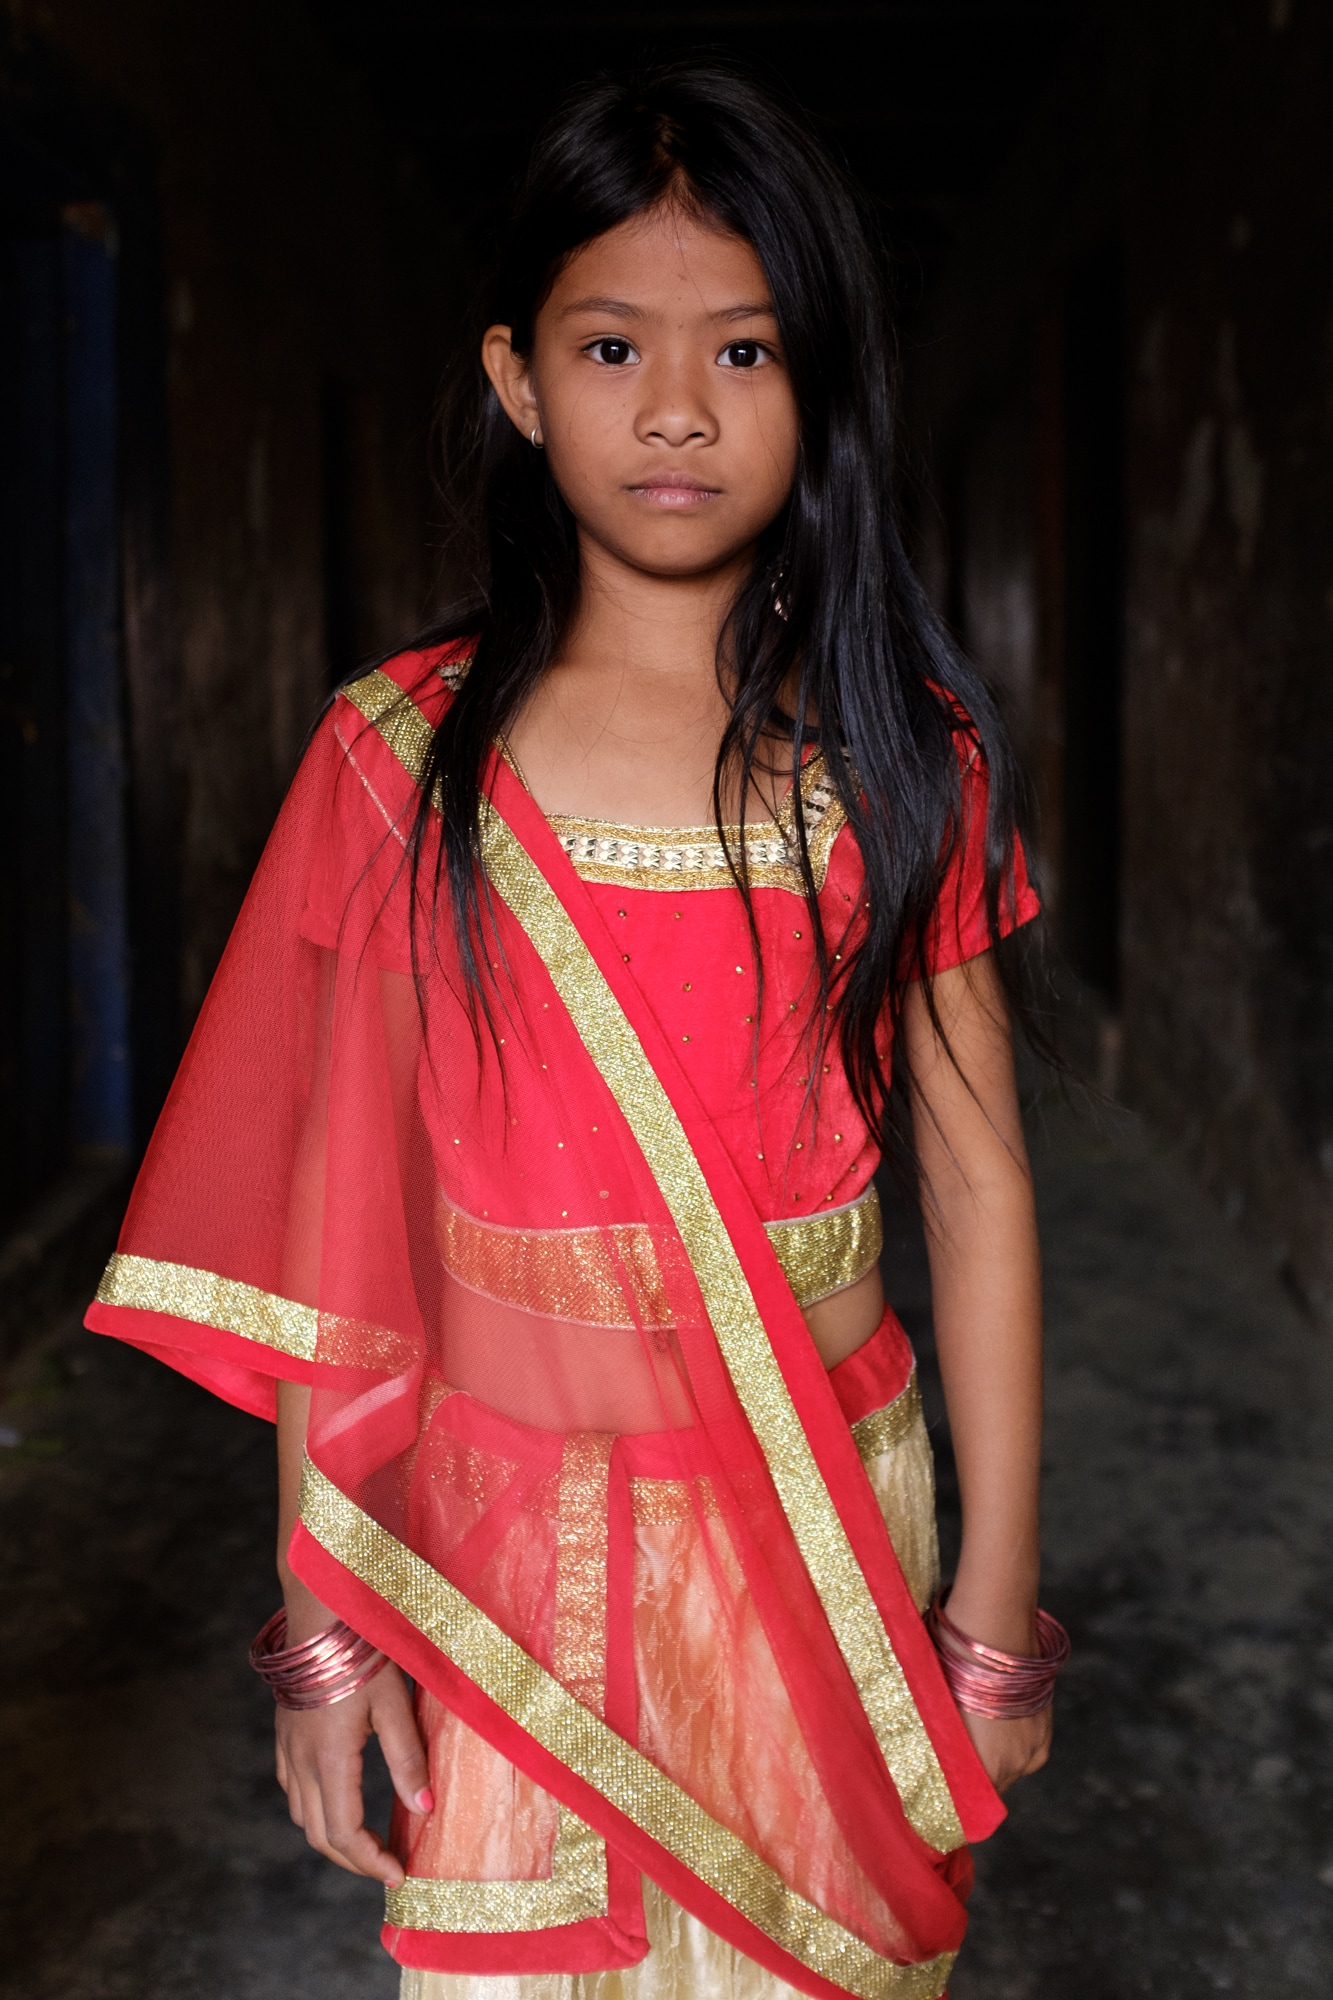 A young Nepali girl wearing festive clothes poses for a picture